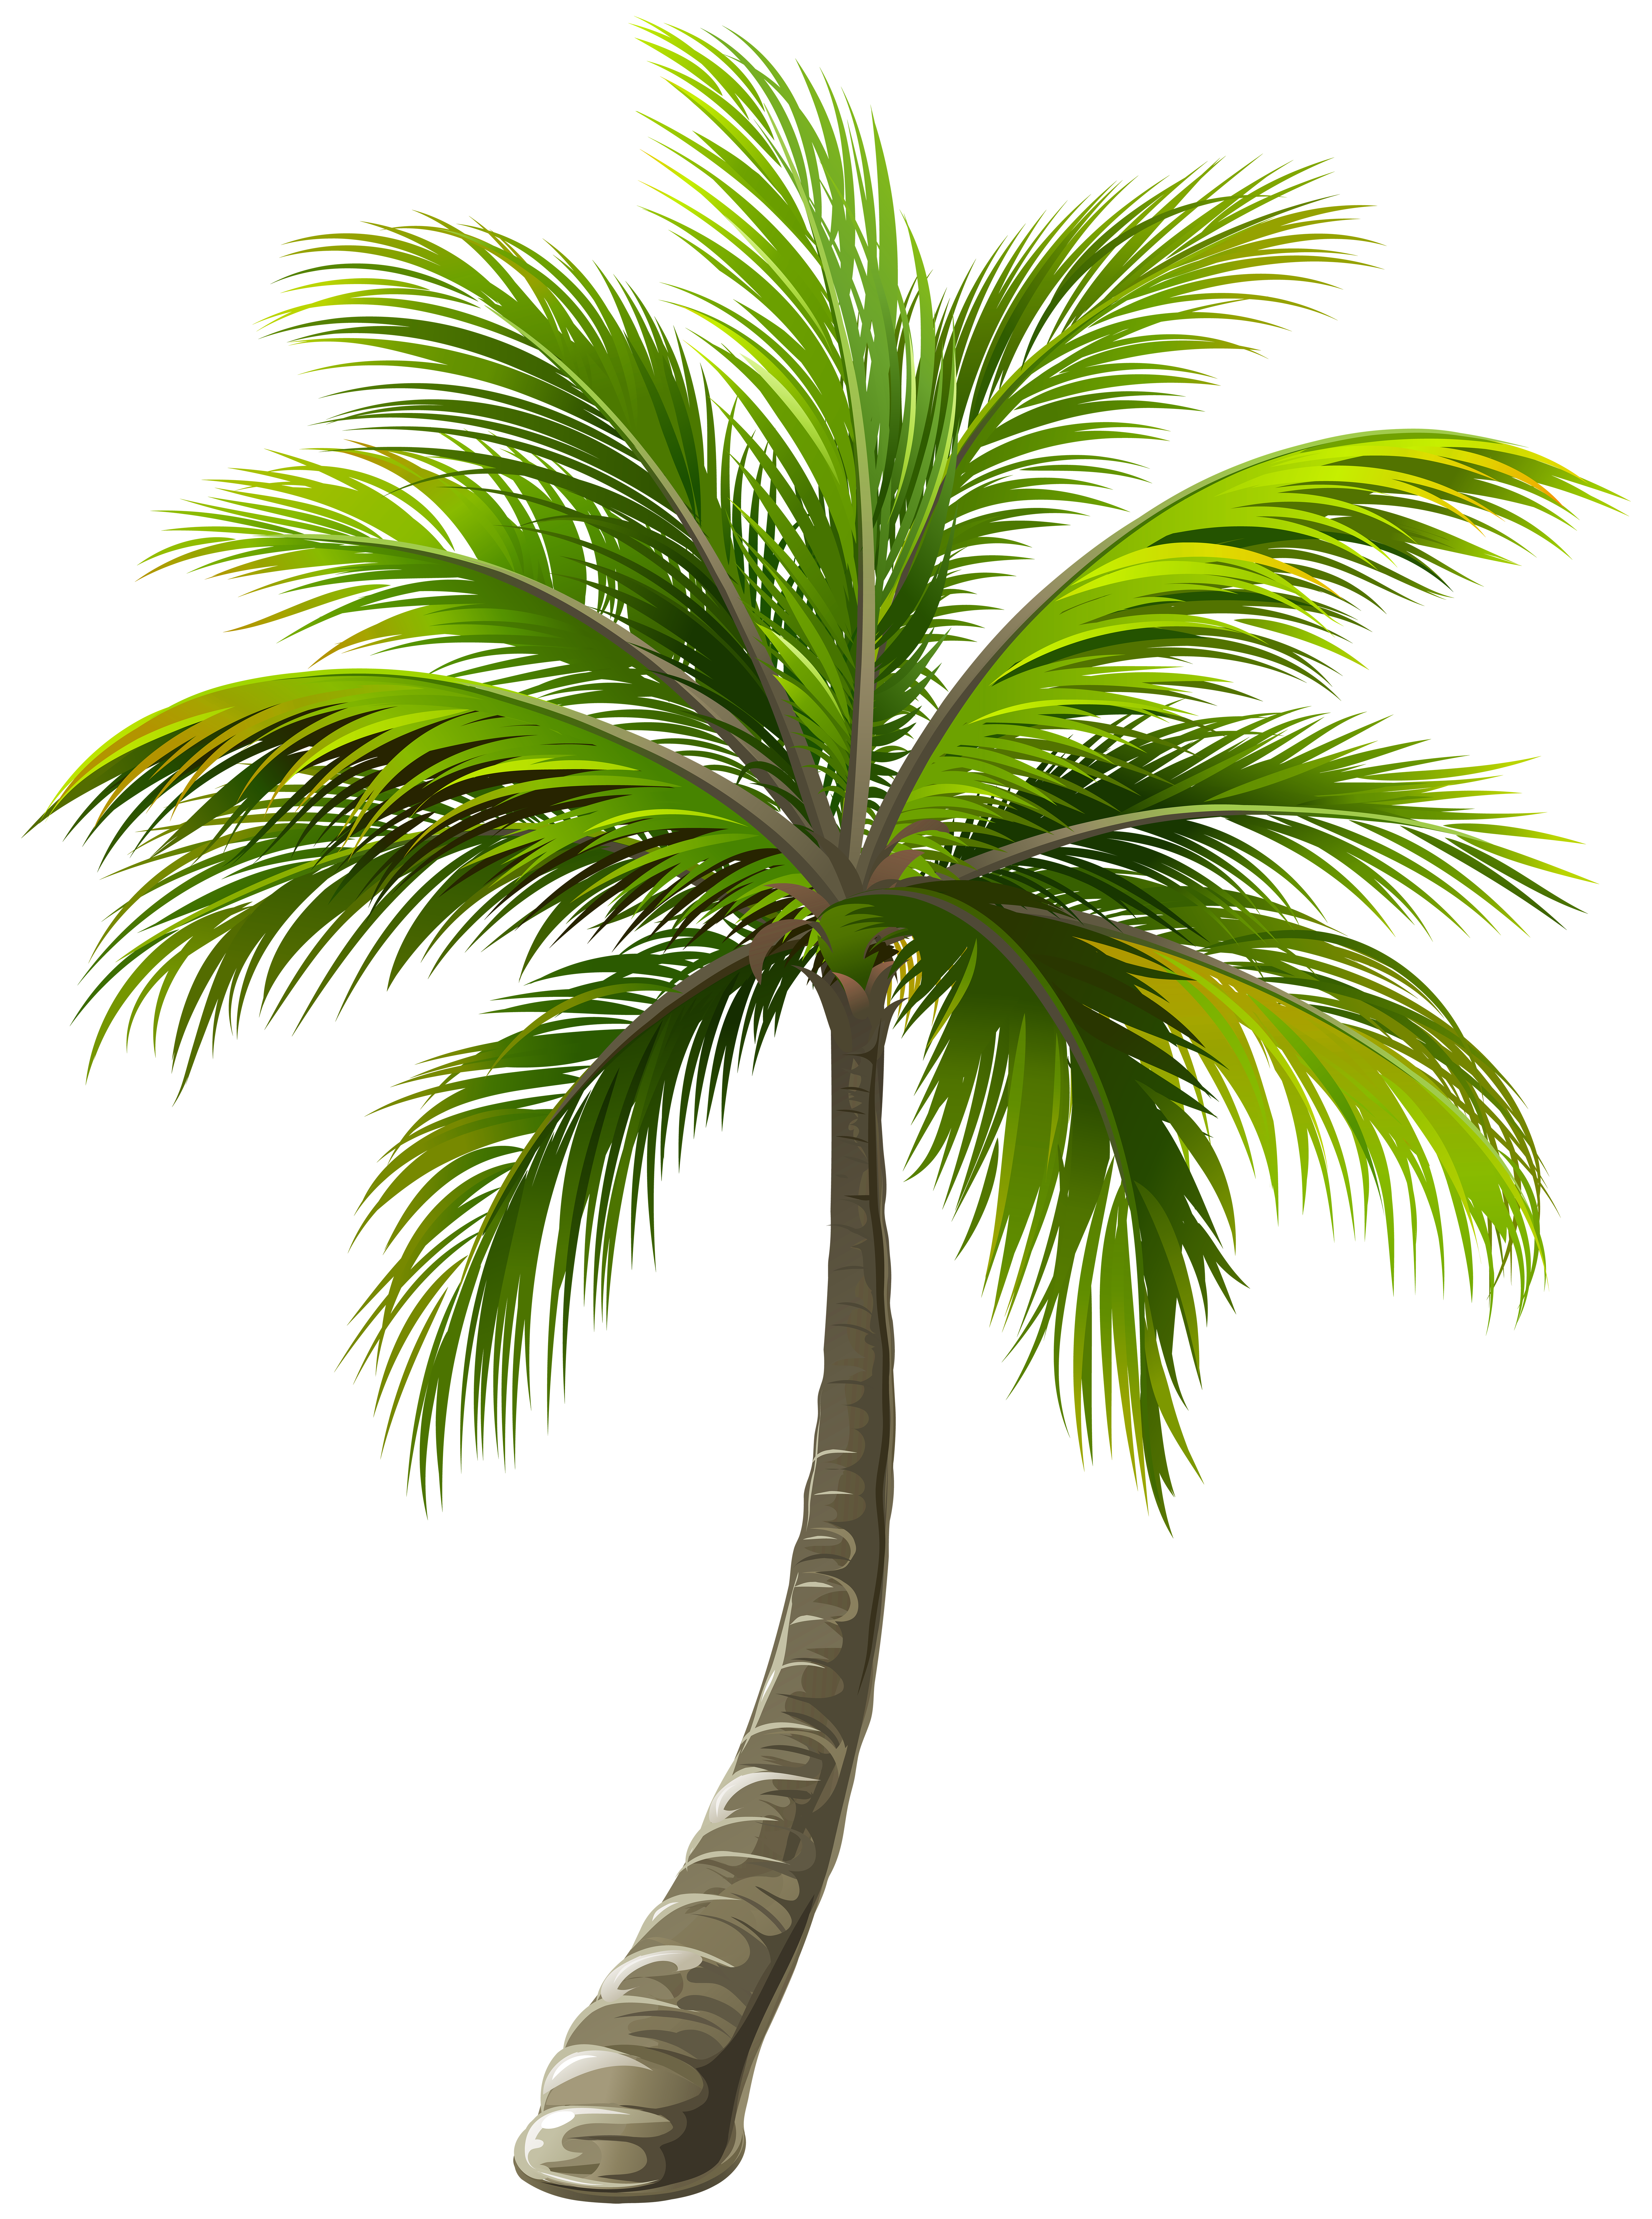 Palm png. Clip art image gallery